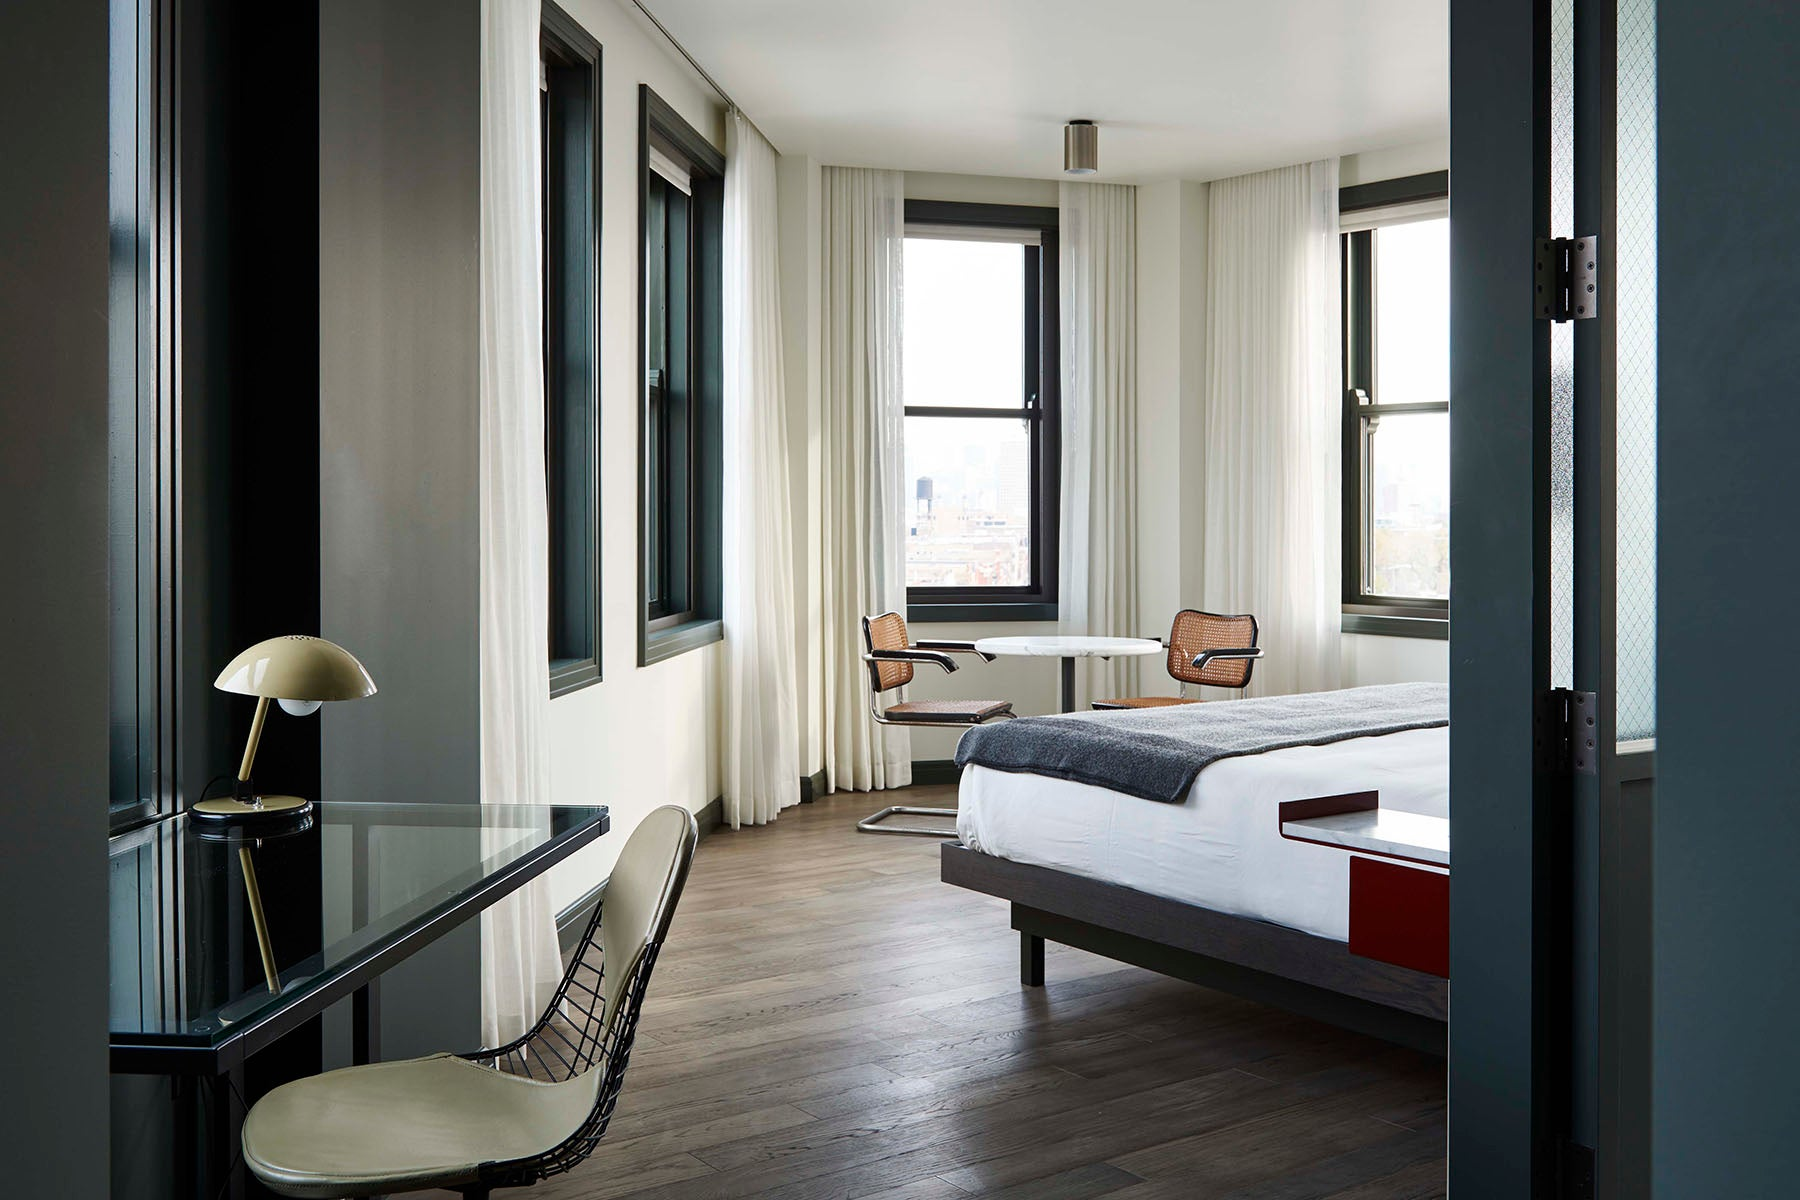 Panorama Suite at the Hotel Robey in Chicago (Photo: Courtesy of the Hotel Robey) - City Guide | SWAGGER Magazine